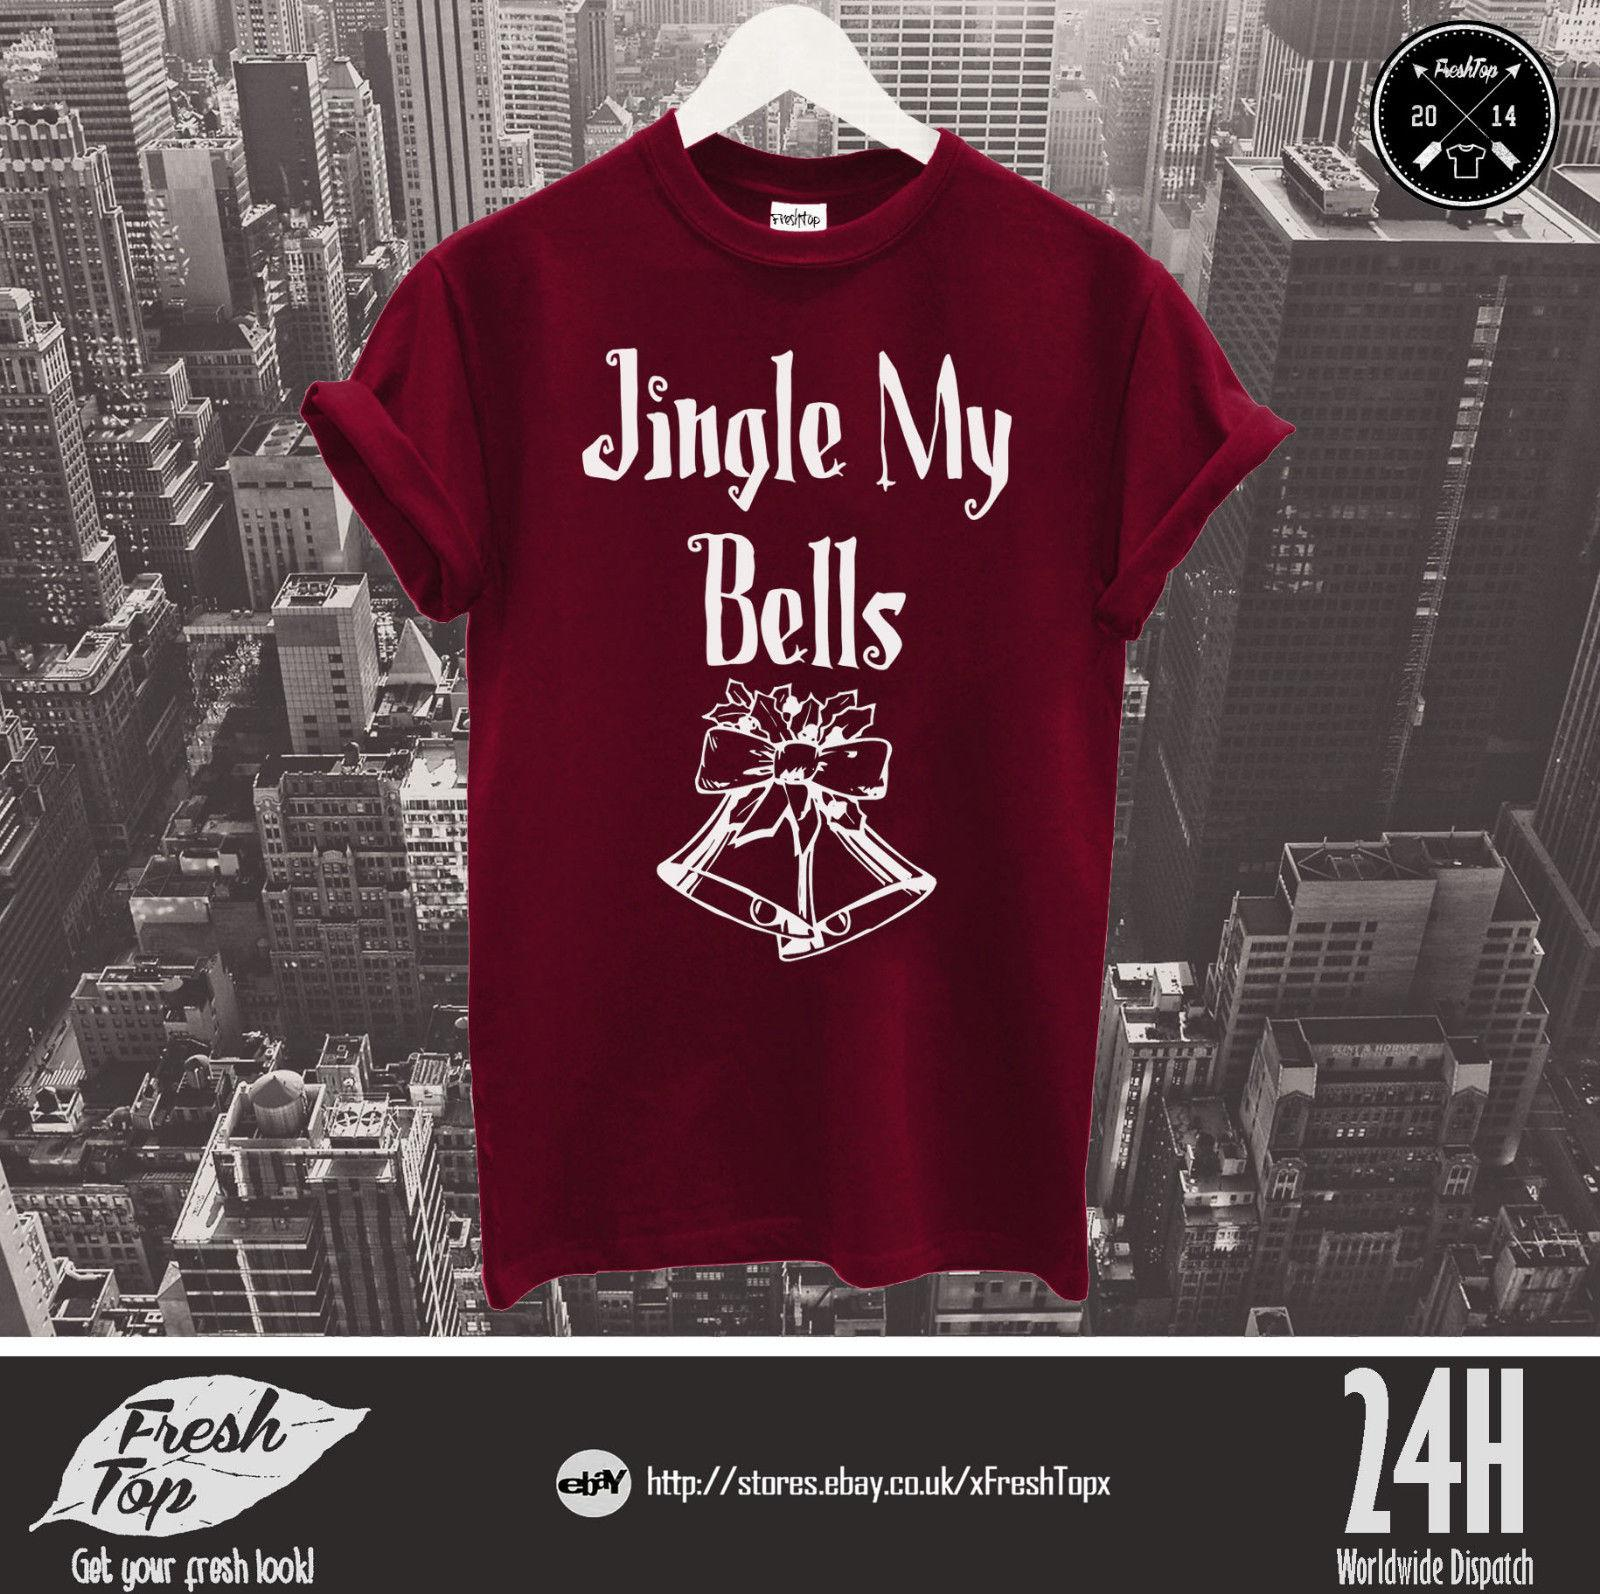 e34aed9245f Jingle My Bells T Shirt Funny Christmas Gift Present Couple Boyfriend  Husband Cool Casual Pride T Shirt Men Interesting T Shirt Purchase T Shirts  From ...